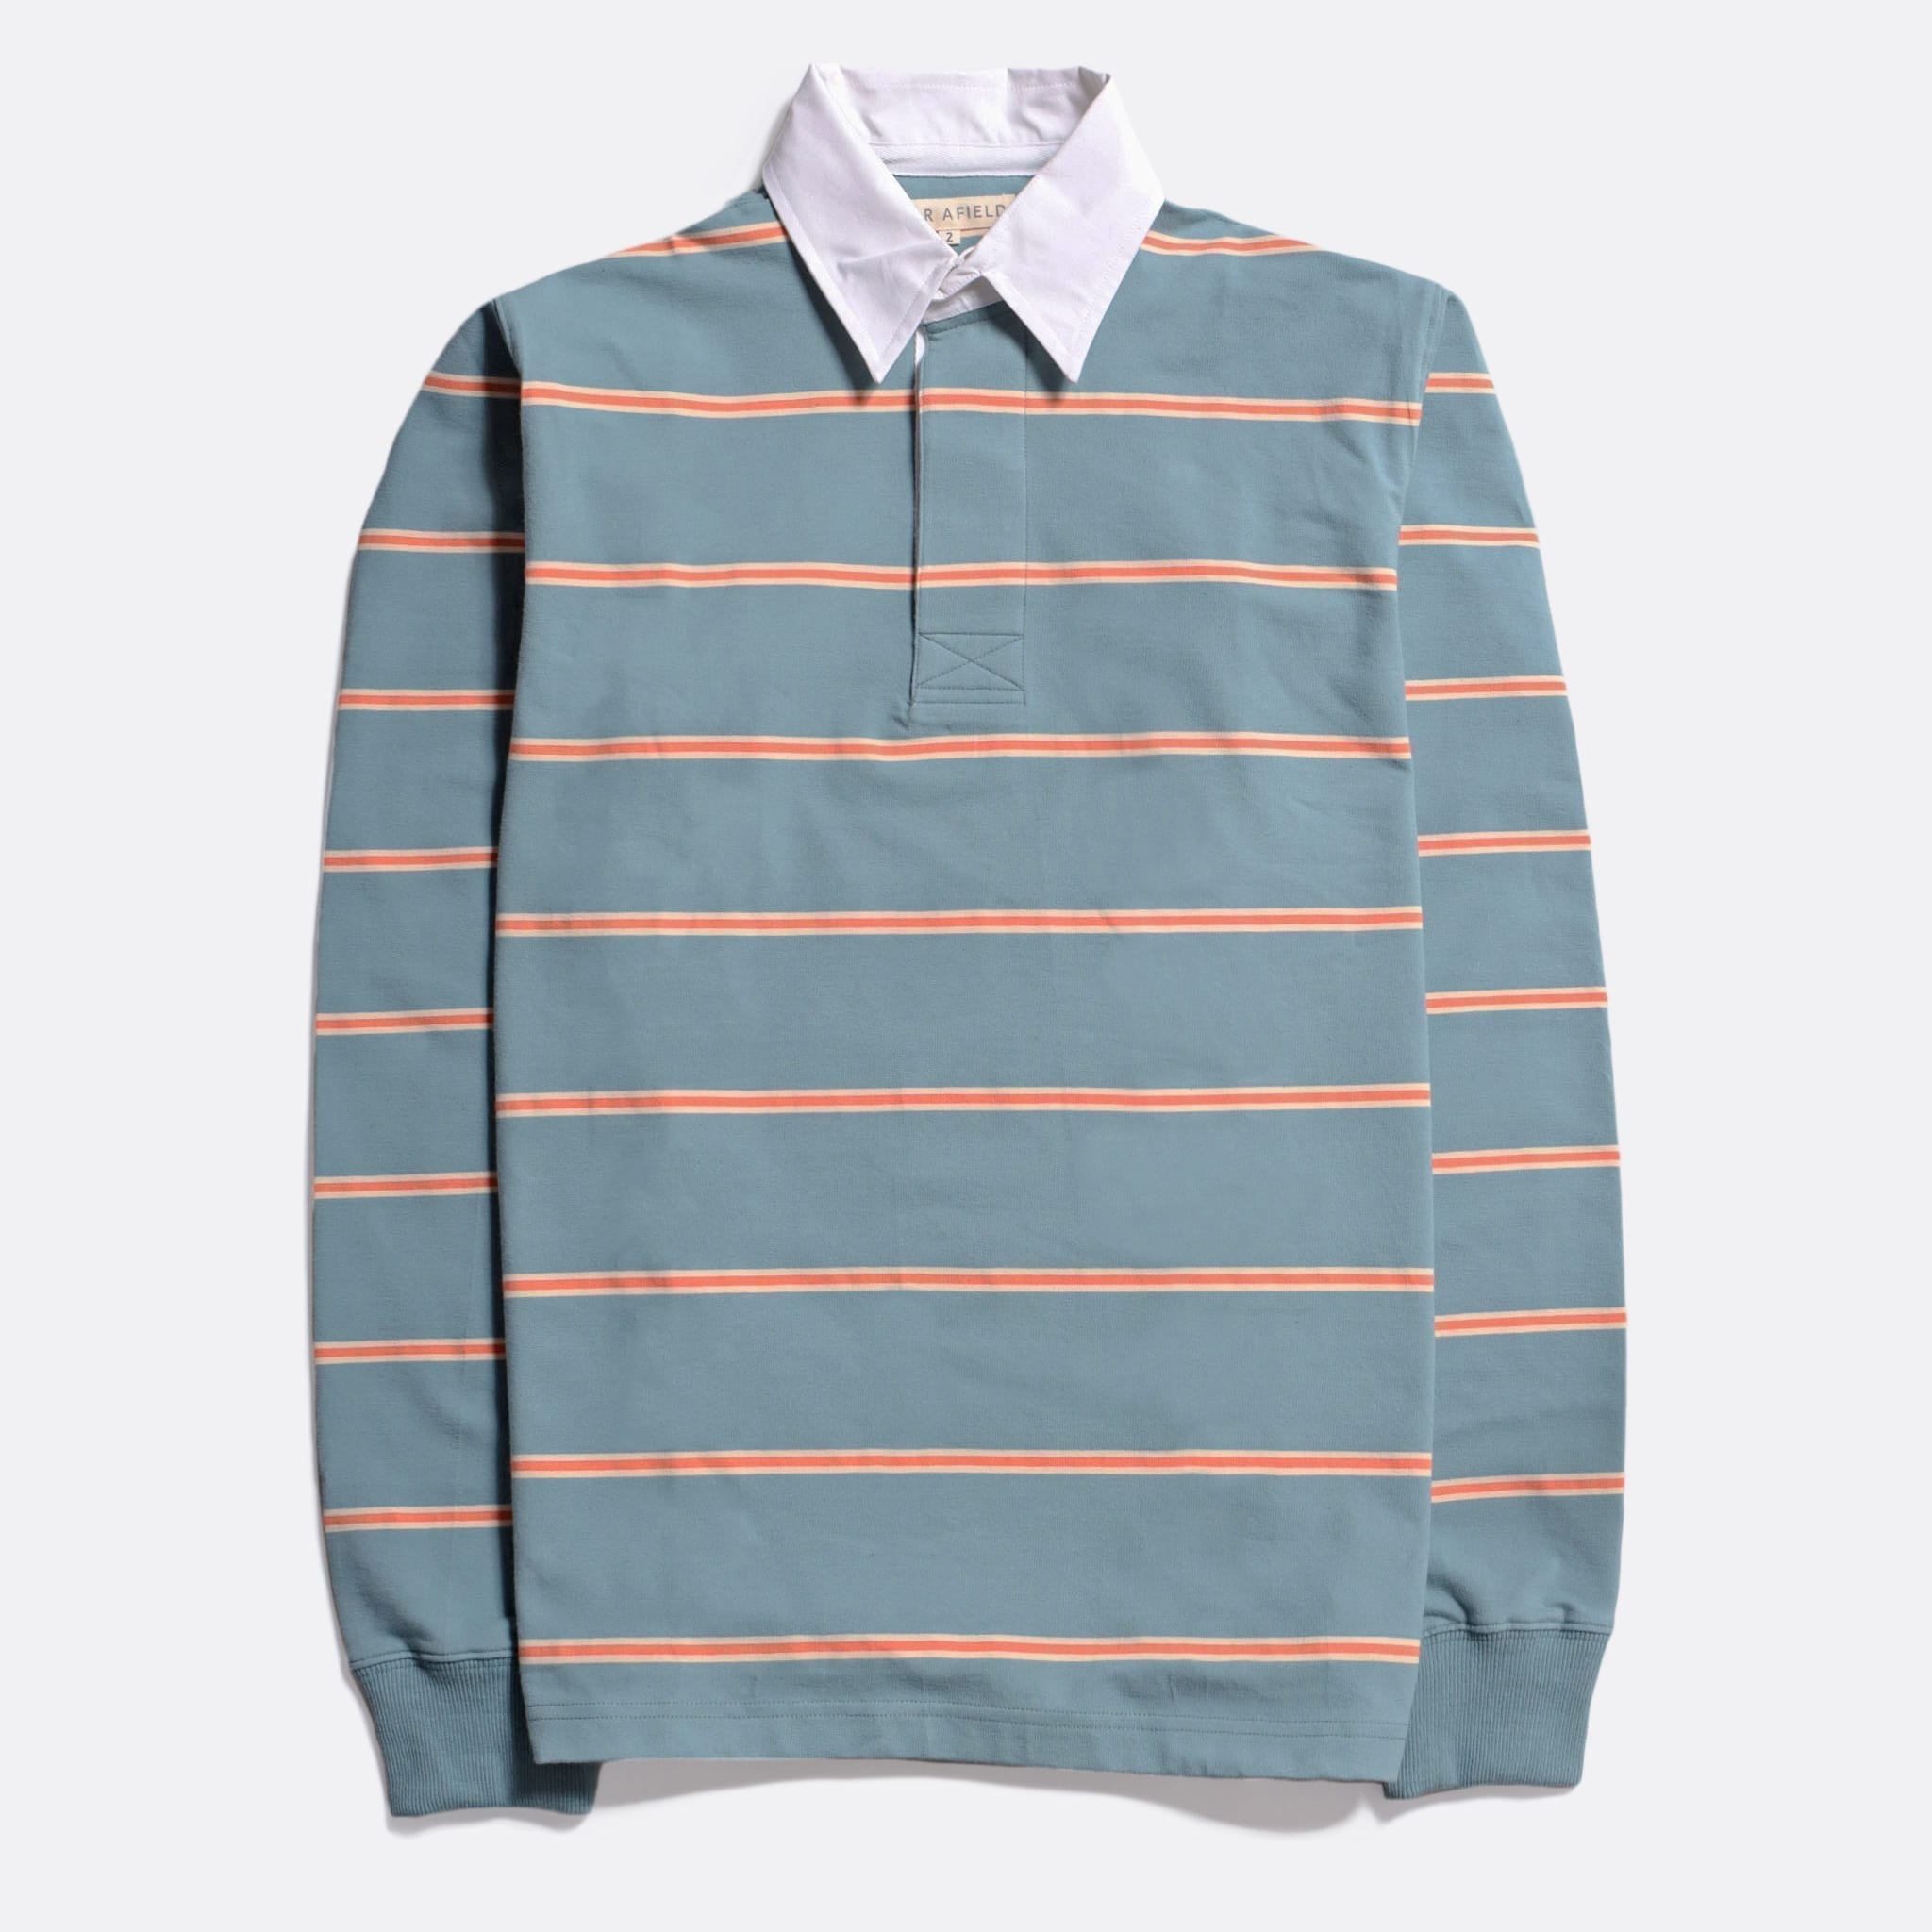 Far Afield Benito Rugby Shirt a Optic Stripe Sagebrush Green BCI Cotton FabricHeritage Inspired